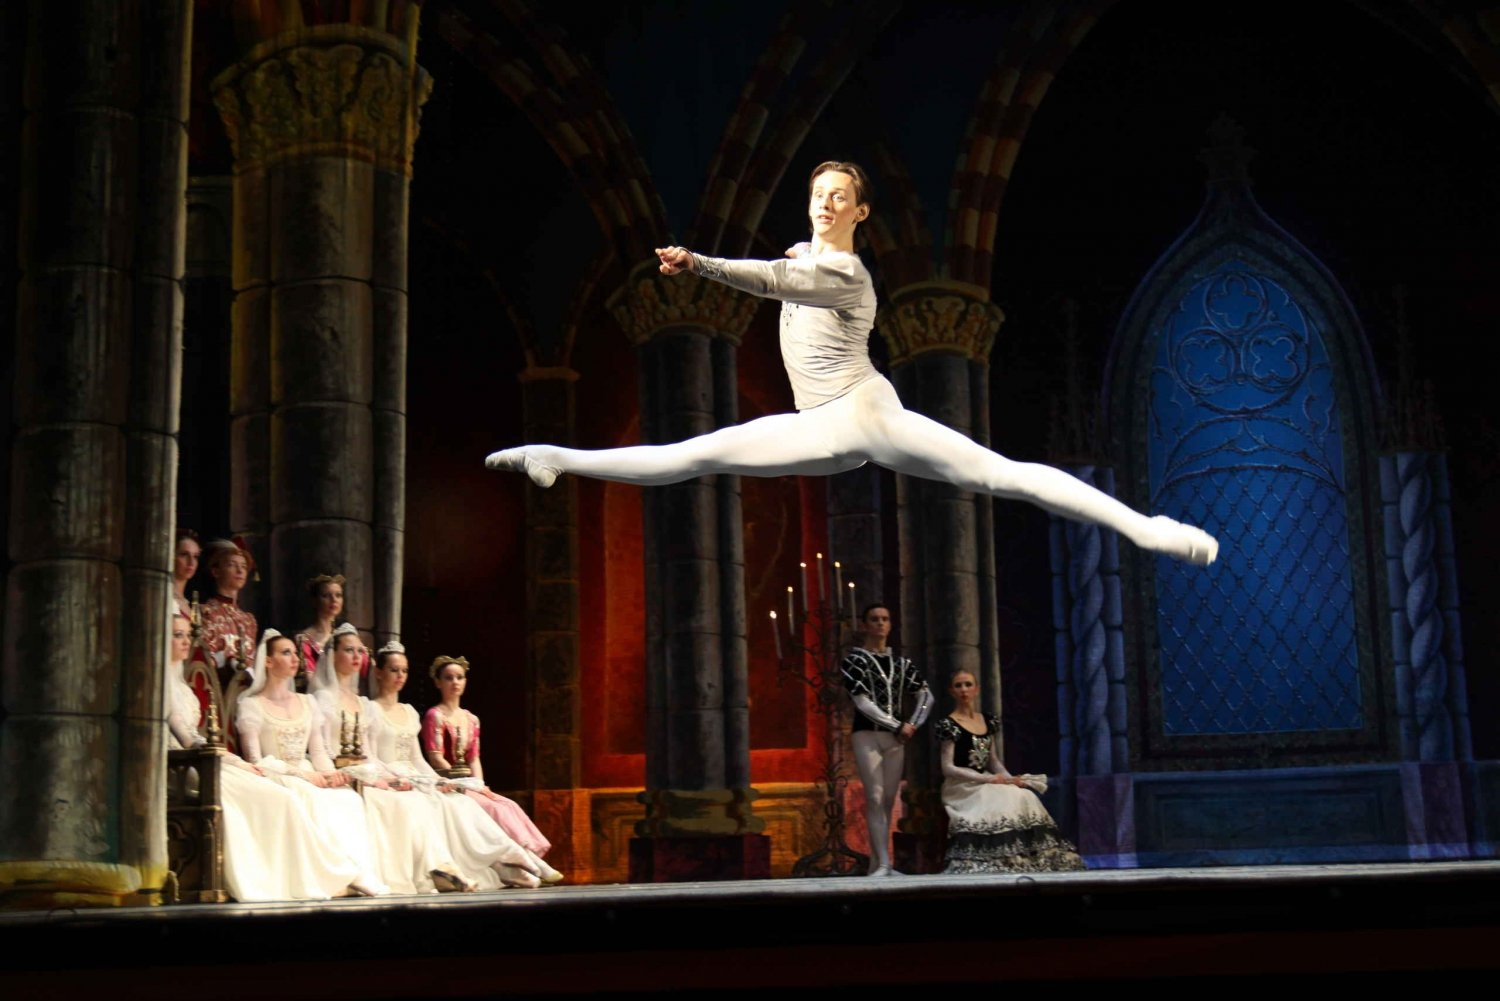 Saint Petersburg: Swan Lake Ballet at the Hermitage Theater